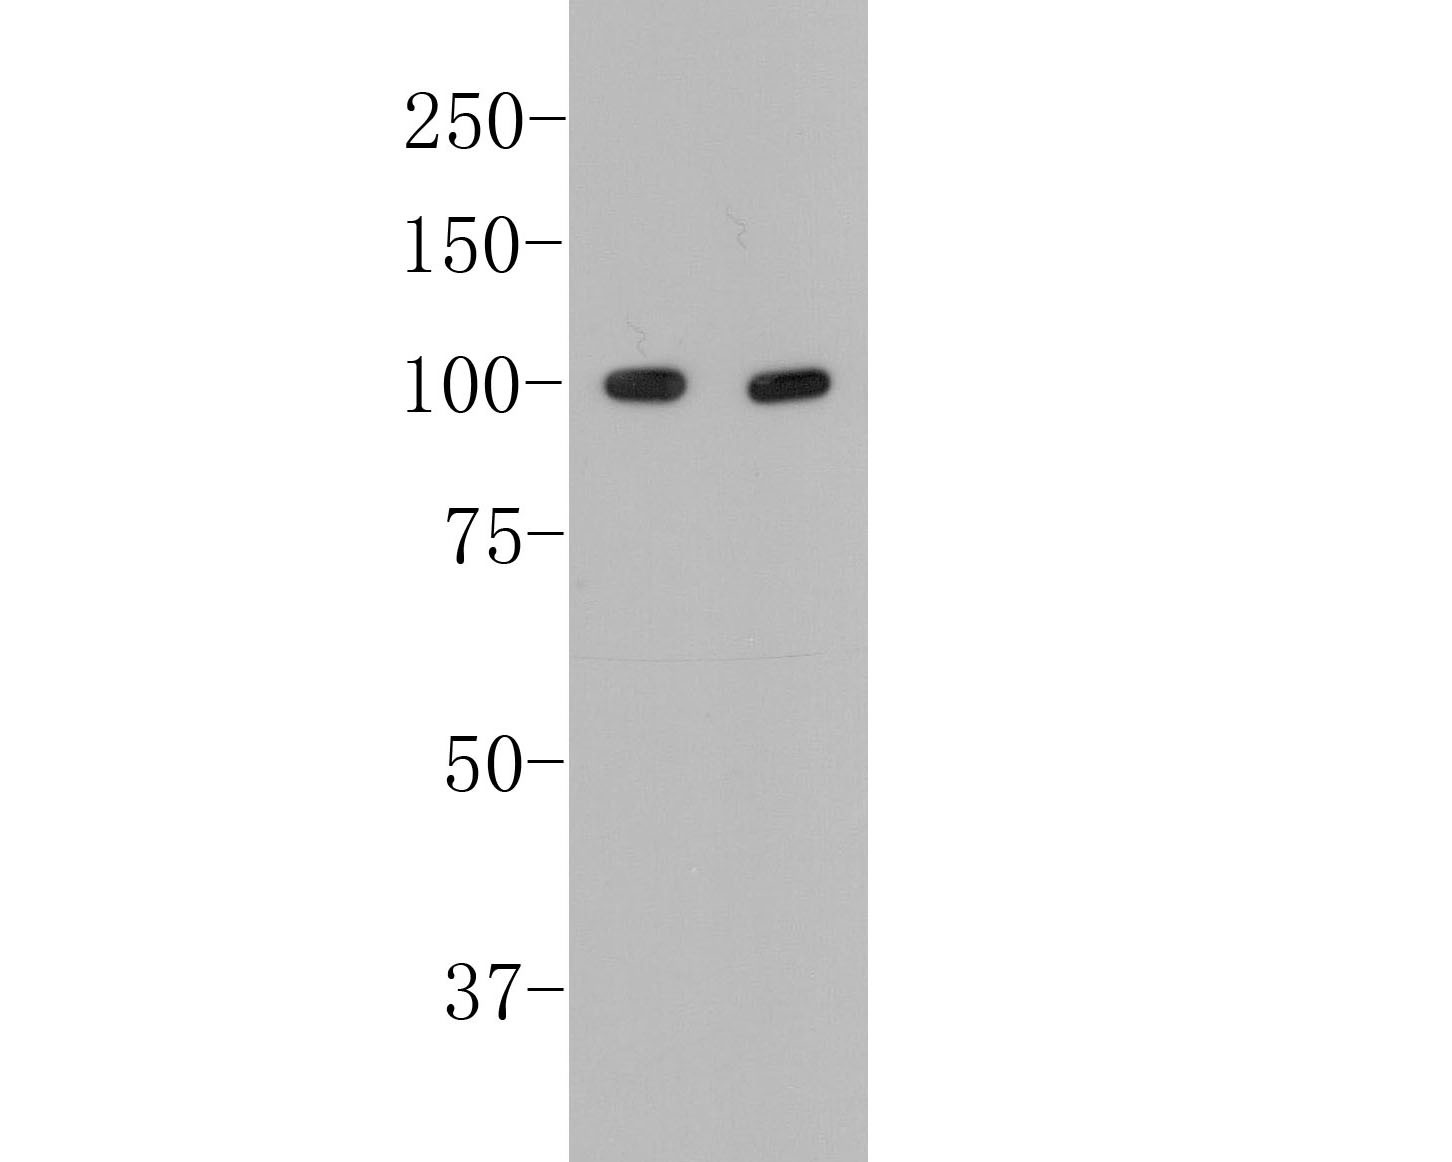 Western blot analysis of CD19 on different lysates. Proteins were transferred to a PVDF membrane and blocked with 5% BSA in PBS for 1 hour at room temperature. The primary antibody (EM40308, 1/500) was used in 5% BSA at room temperature for 2 hours. Goat Anti-Rabbit IgG - HRP Secondary Antibody (HA1001) at 1:5,000 dilution was used for 1 hour at room temperature.<br /> Positive control: <br /> Lane 1: Raji cell lysate<br /> Lane 2: Daudi cell lysate